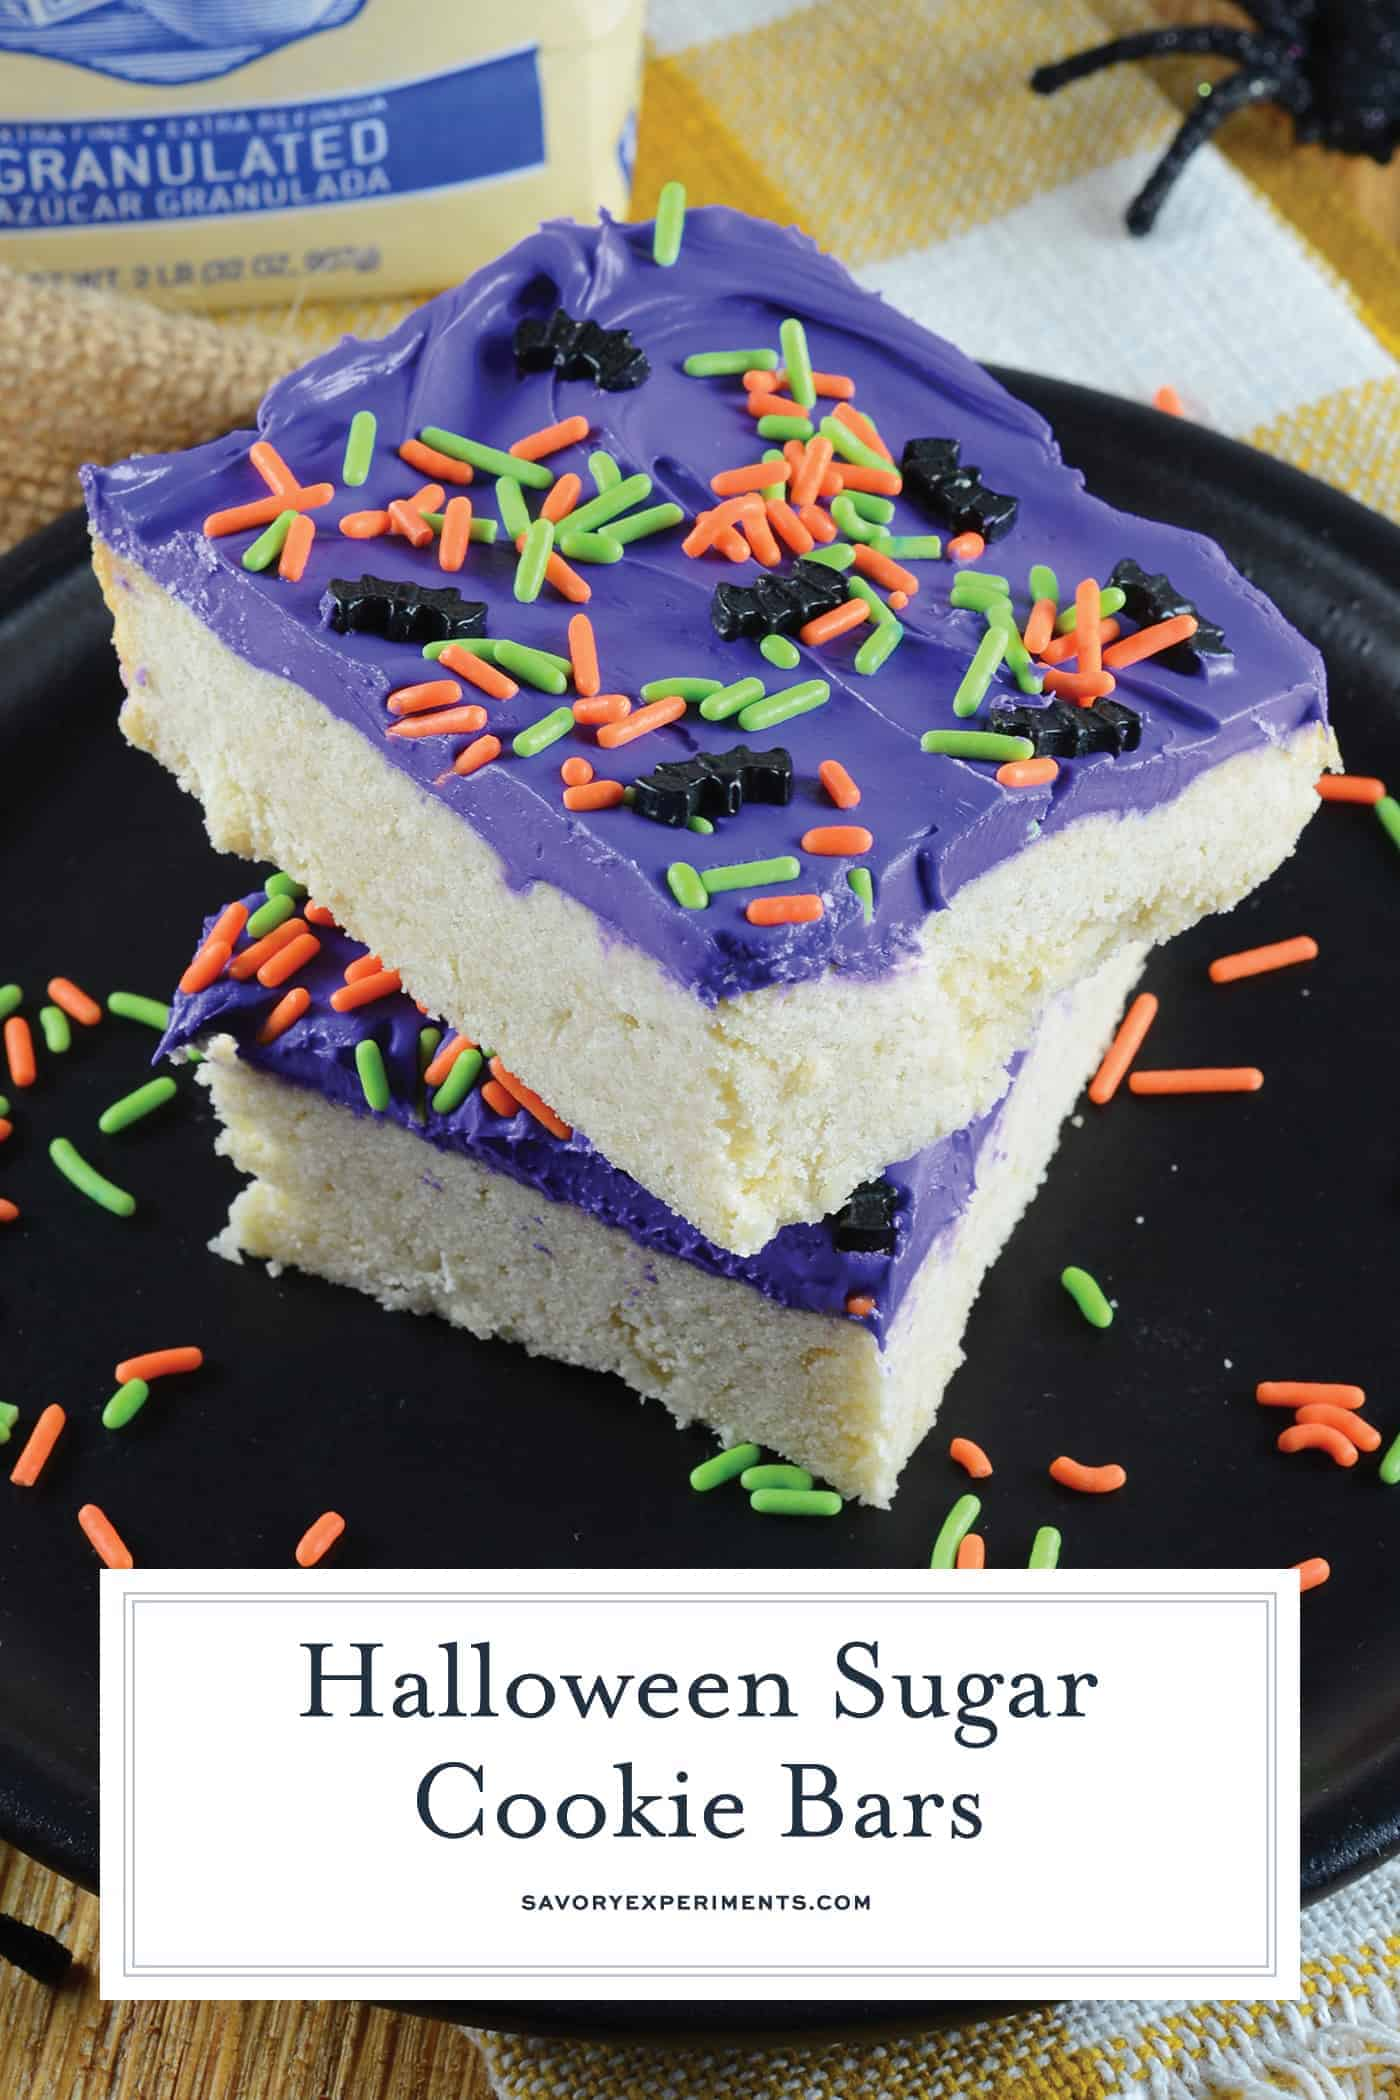 Halloween Sugar Cookie Bars are thick and chewy, frosted with a classic buttercream and topped with festive sprinkles. Perfect for the whole family! #sugarcookiebars #halloweendesserts #halloweensnacks www.savoryexperiments.com